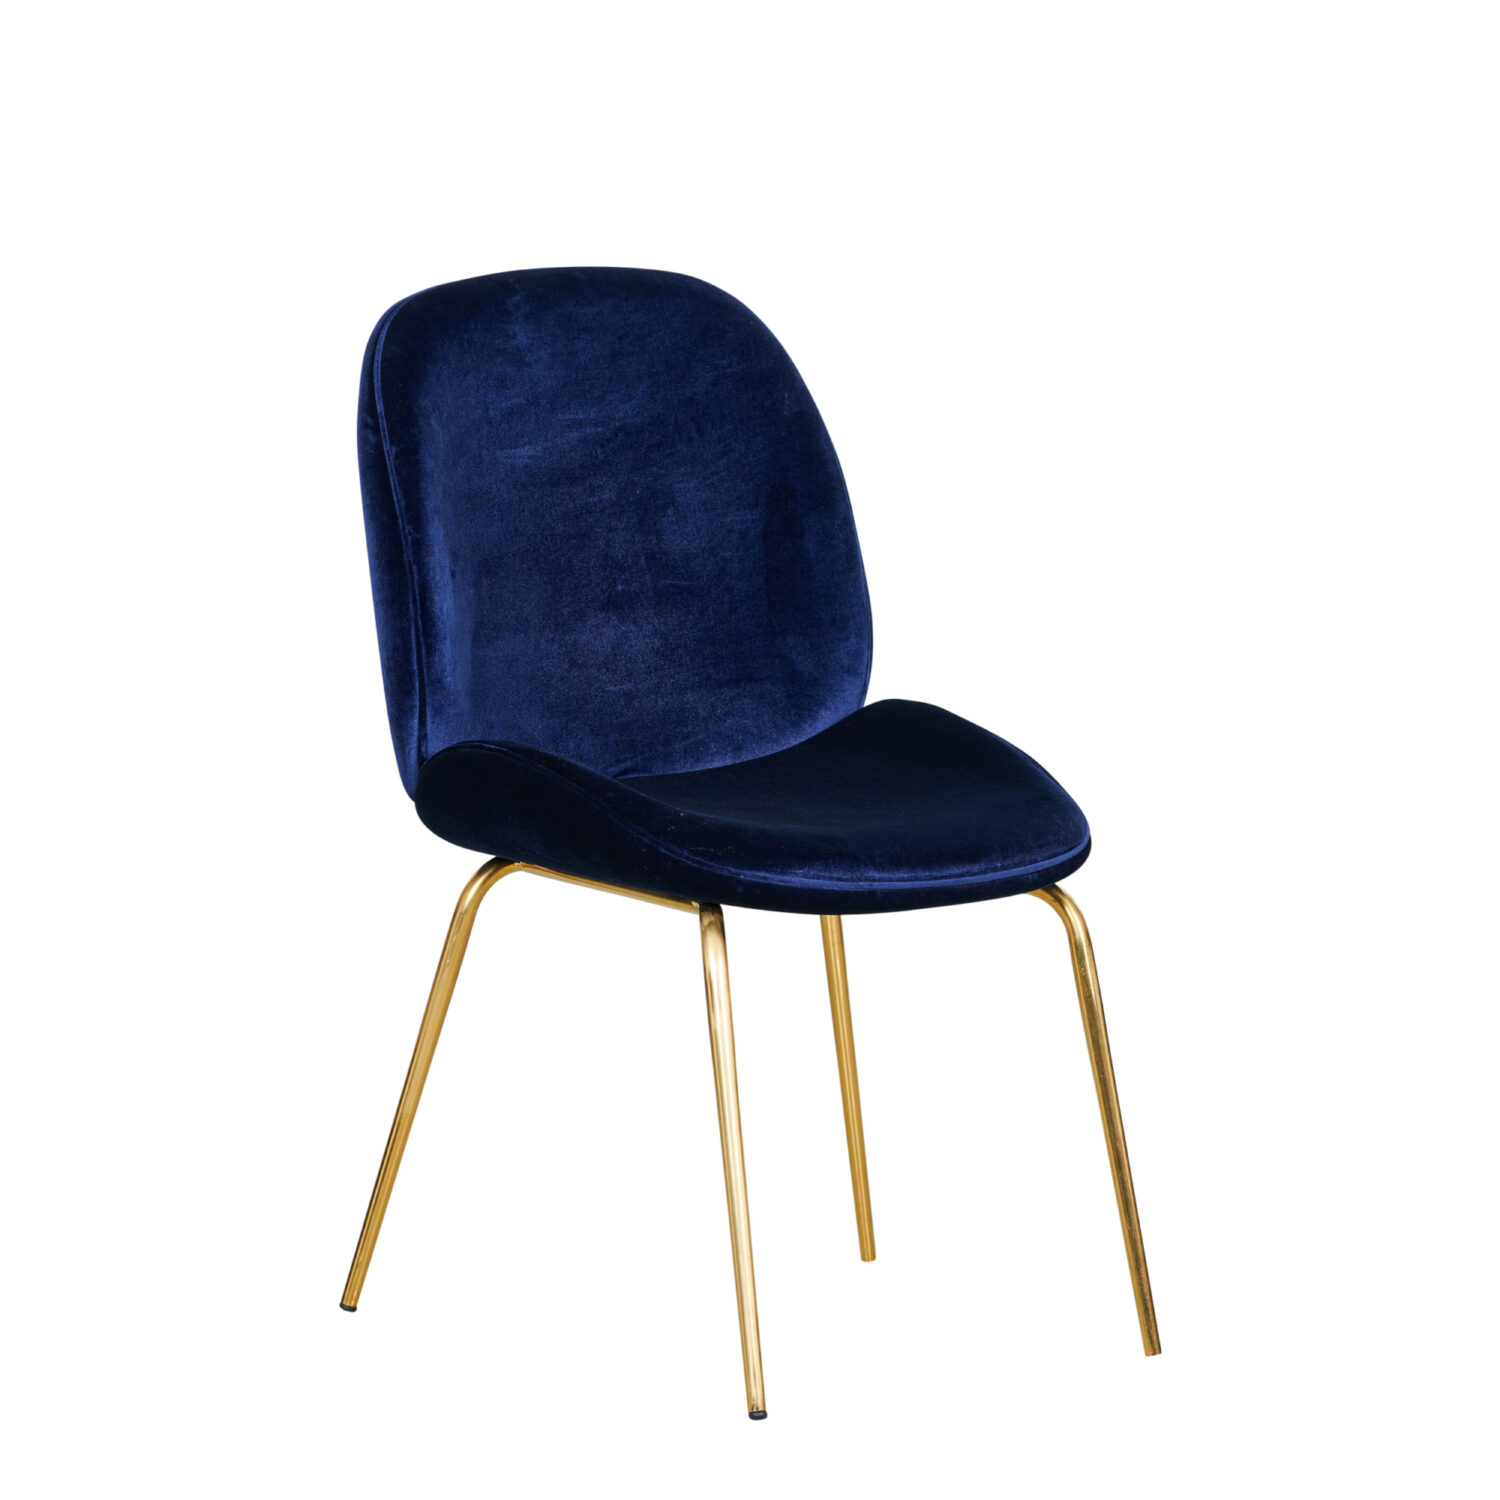 Grace Occasional Chair - Navy Seat & Gold Legs - Event Artillery